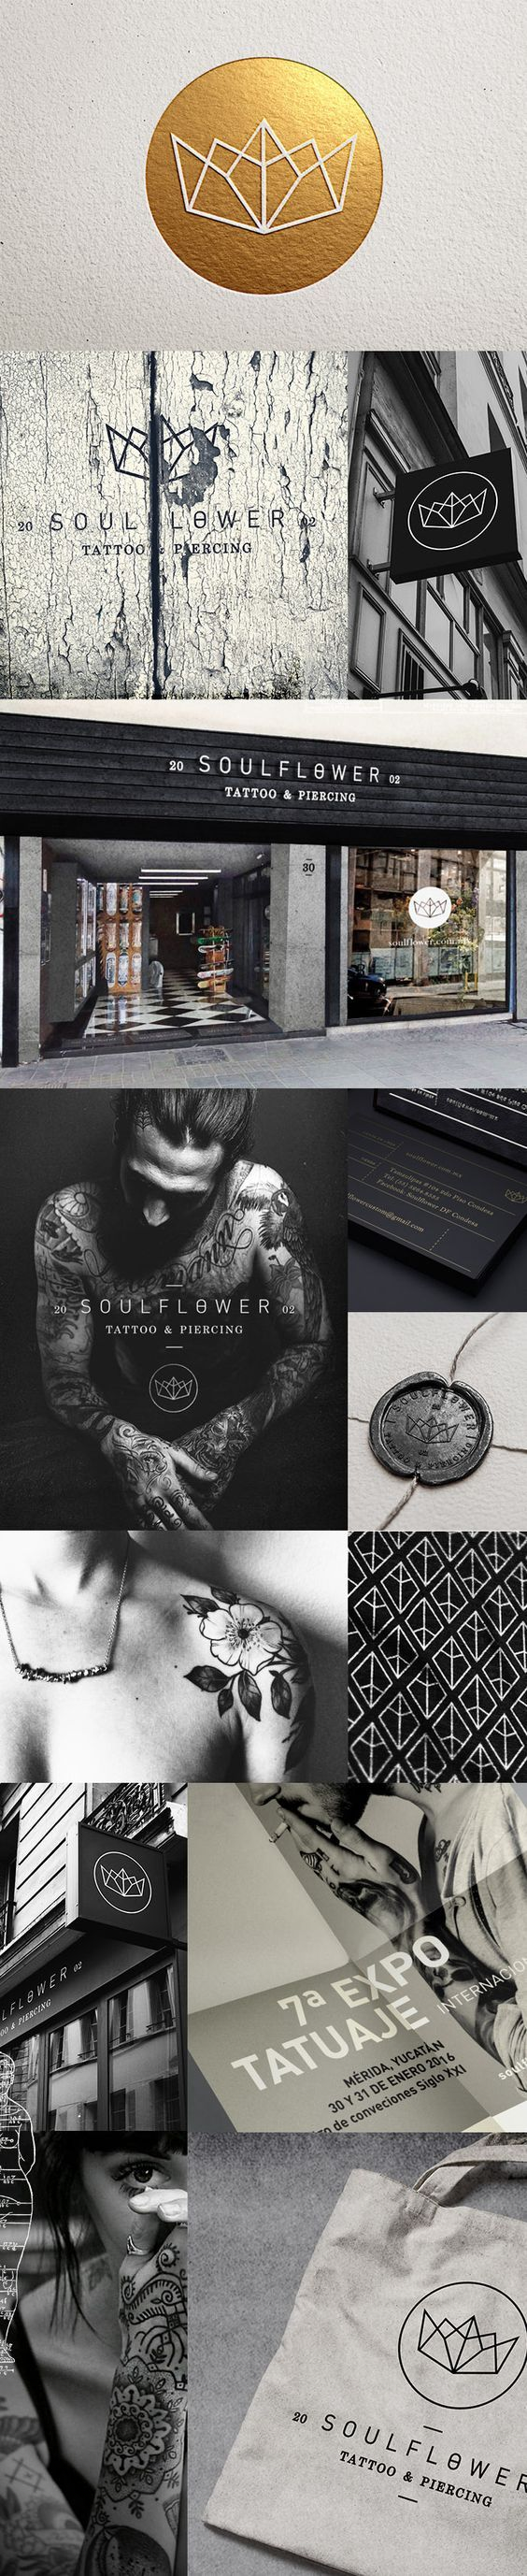 Soulflower Branding on Behance | Fivestar Branding – Design and Branding Agency & Inspiration Gallery